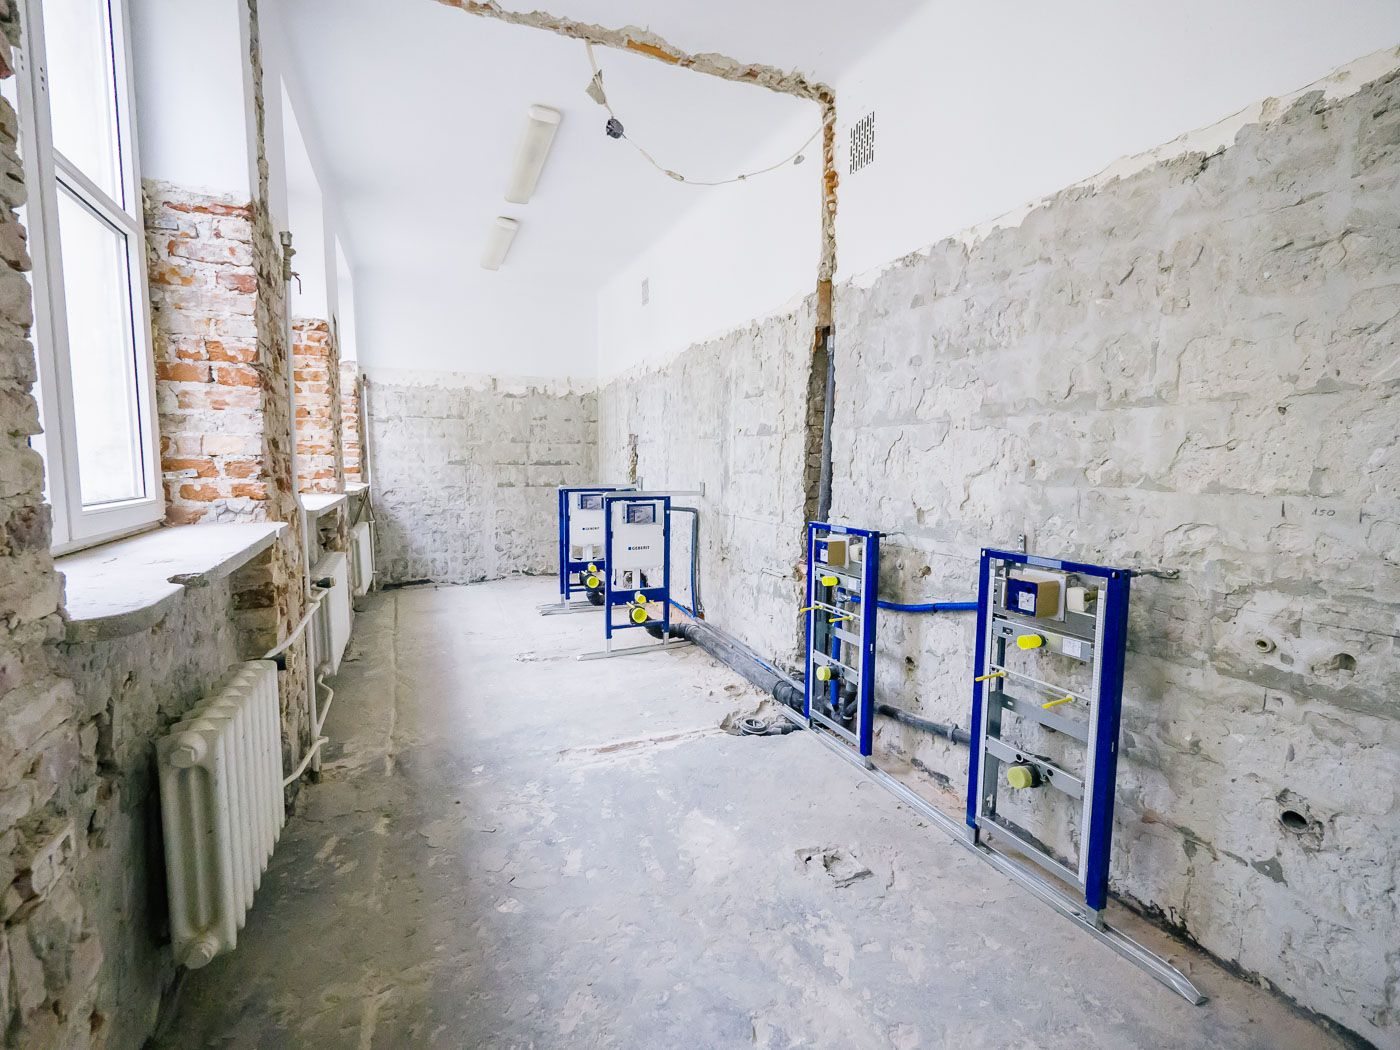 Have a look what the Geberit apprentices did during their stay in Warsaw. They kicked off the renovation of the school's sanitary facilities in early October 2016.